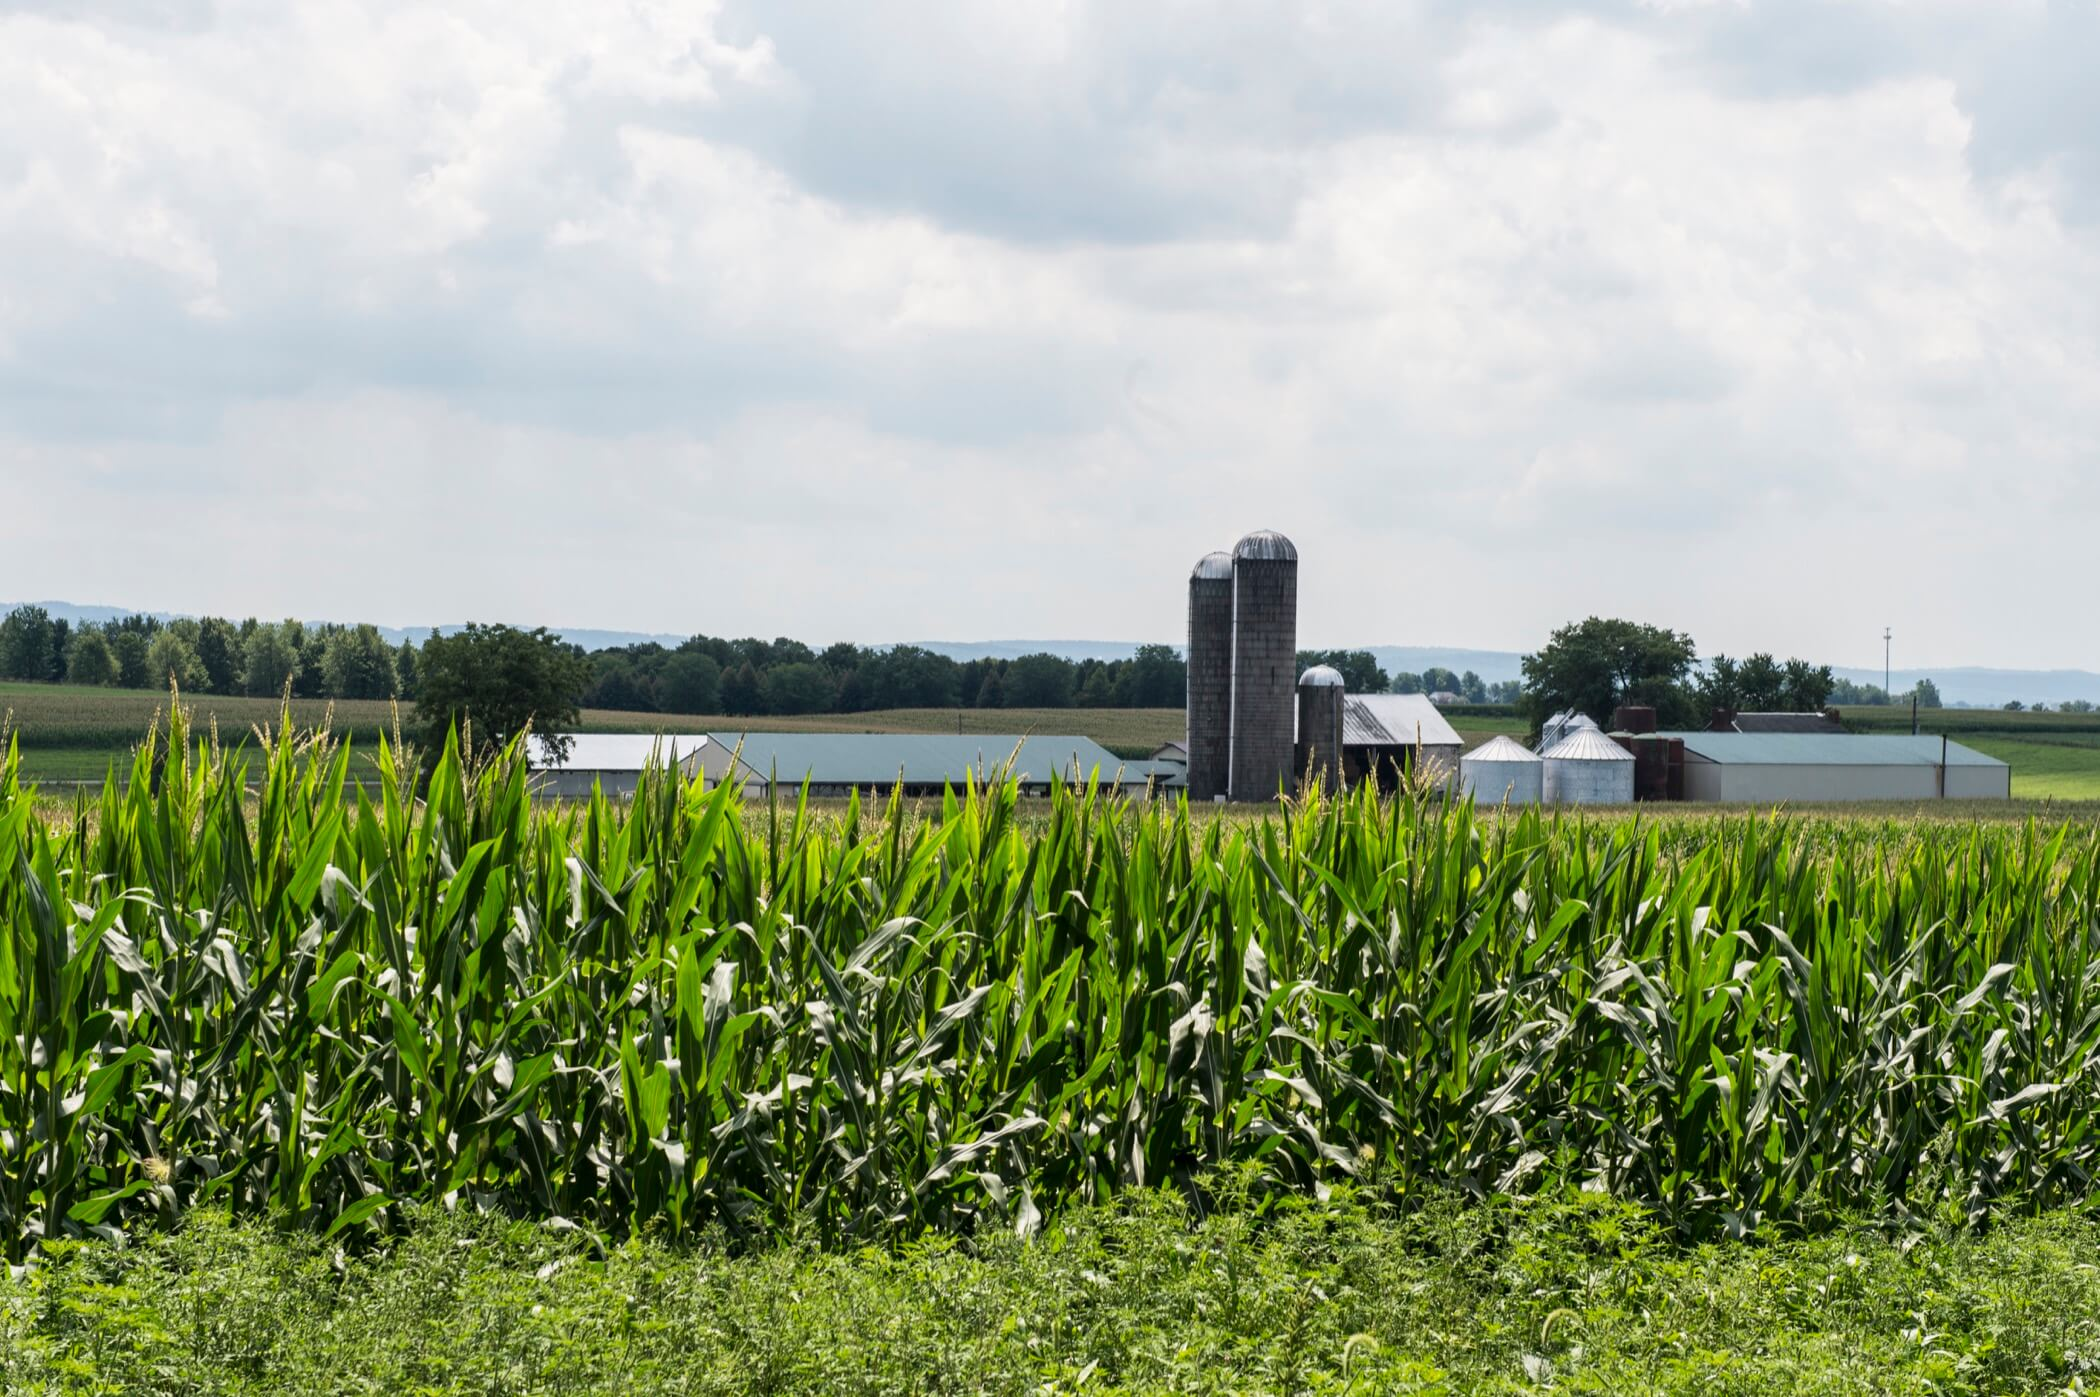 barn and silos in the distance behind a field of corn